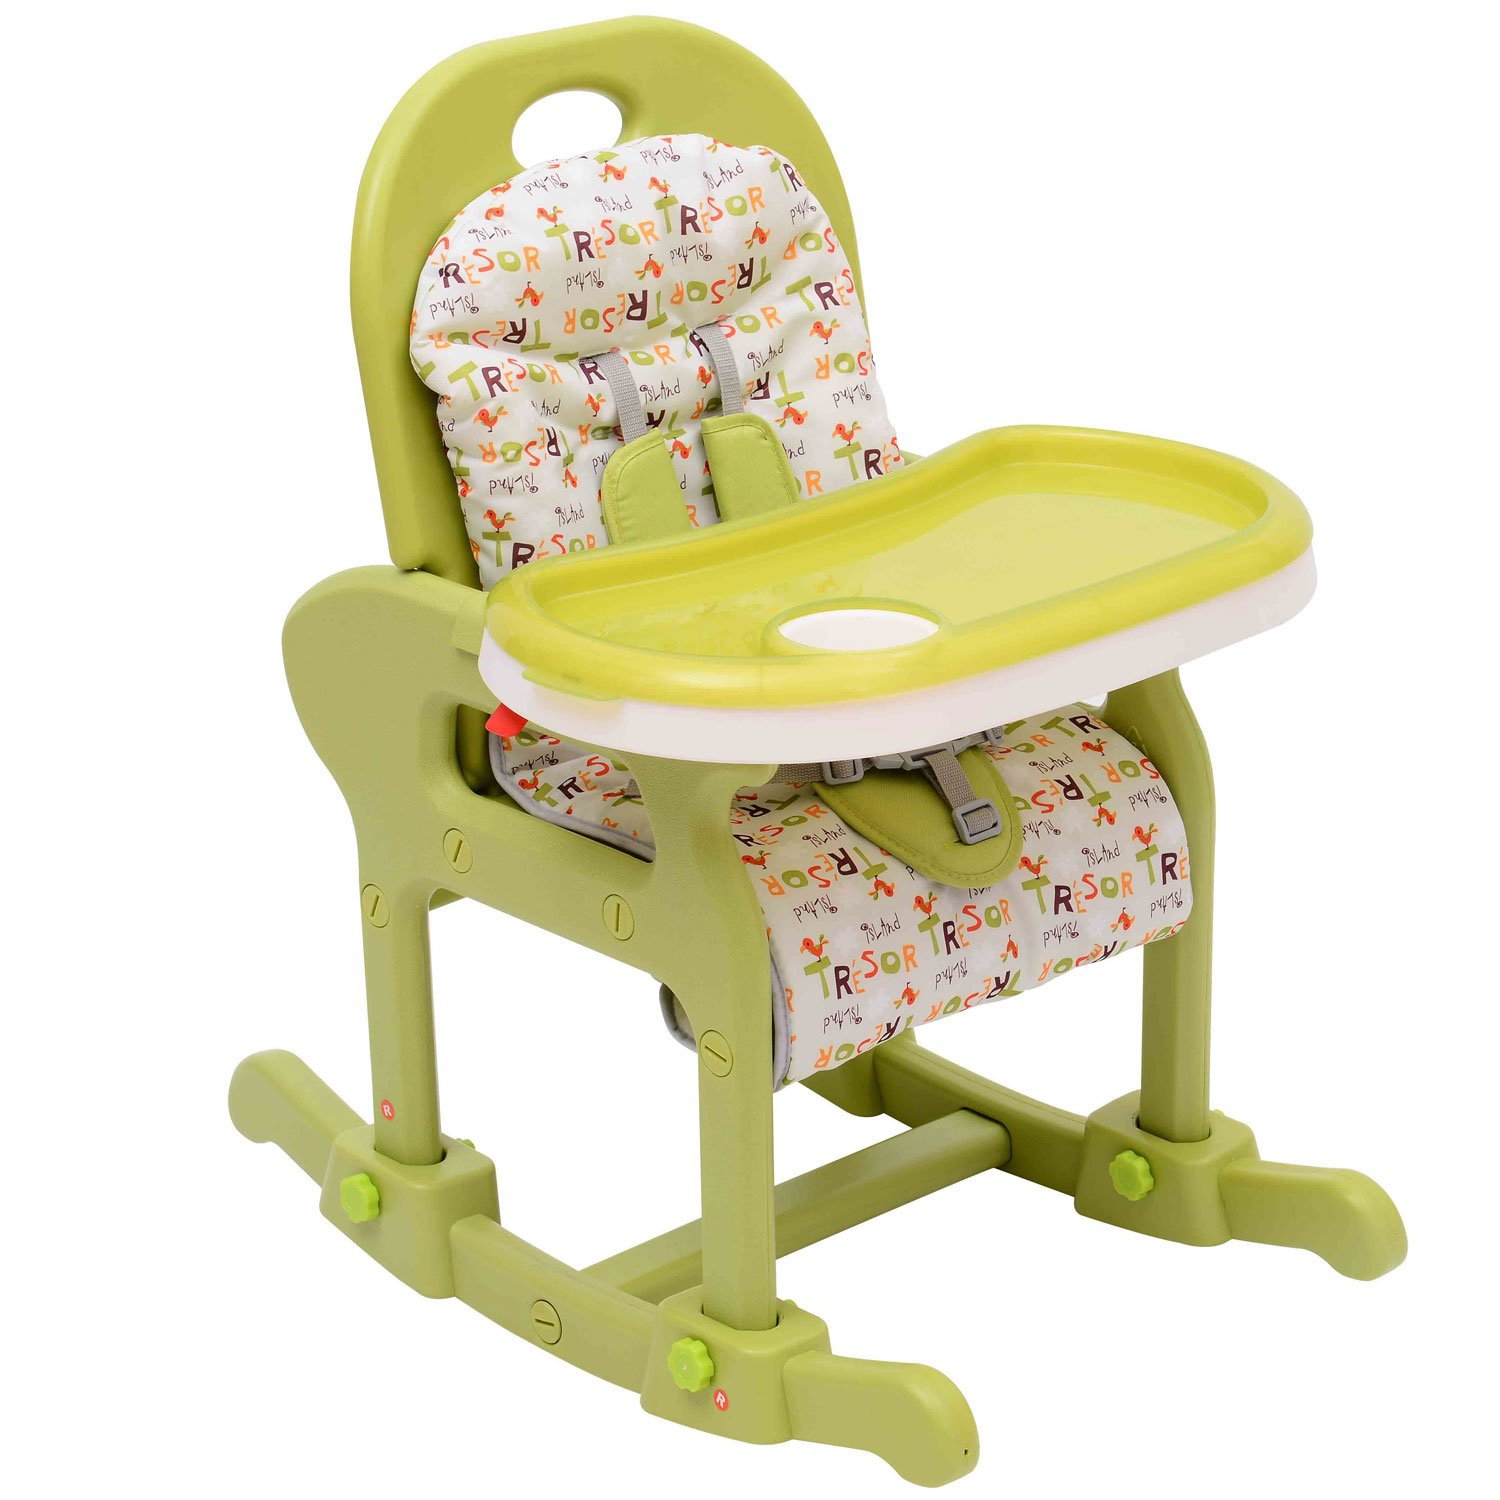 Hom Baby Toddler Rocking Feeding Highchair Booster Seat